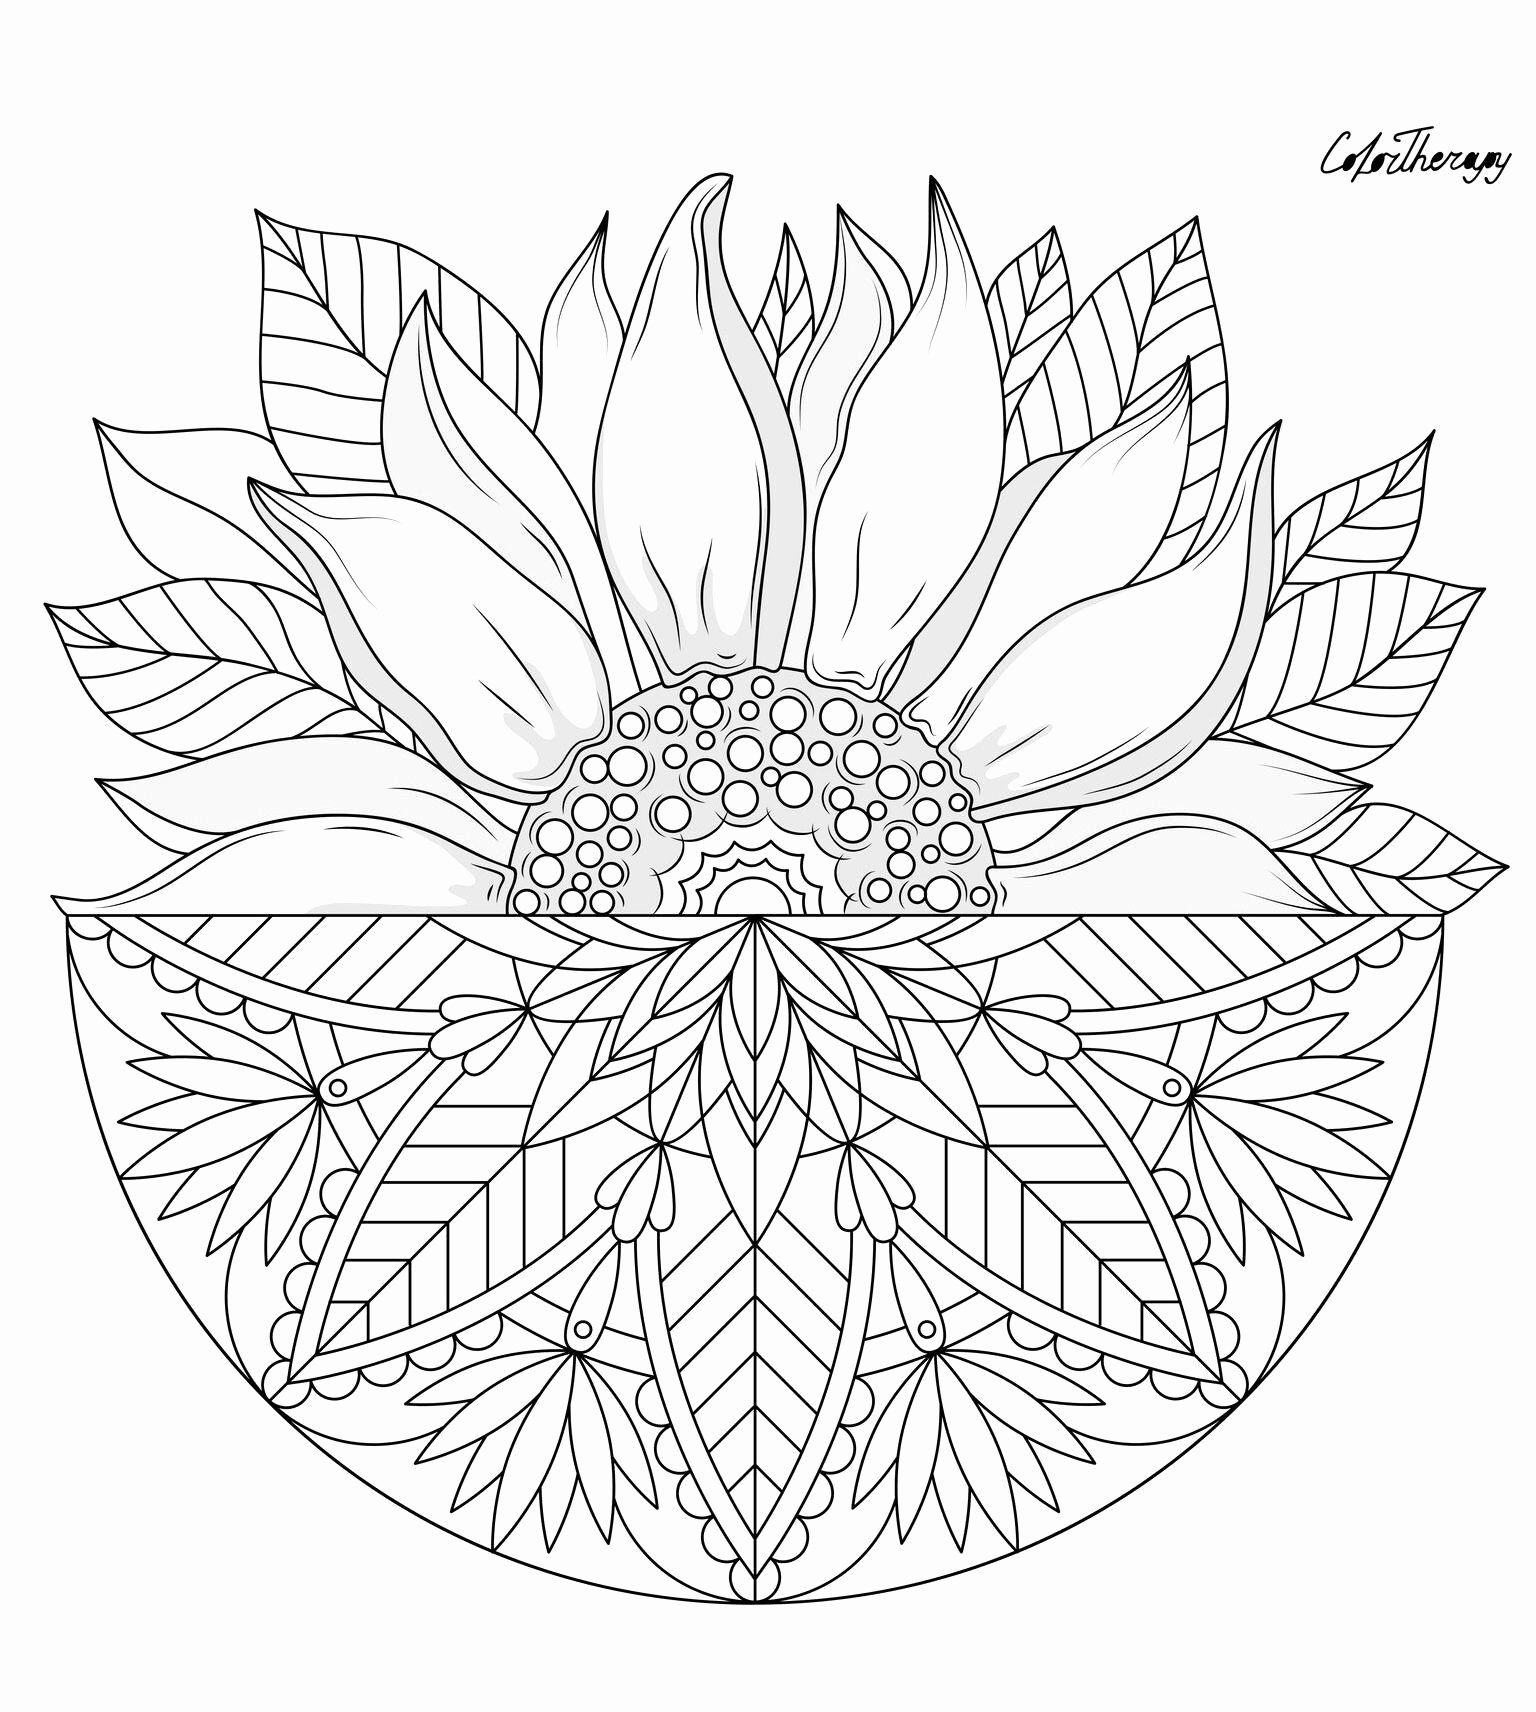 Coloring Books With Flowers In 2020 Sunflower Coloring Pages